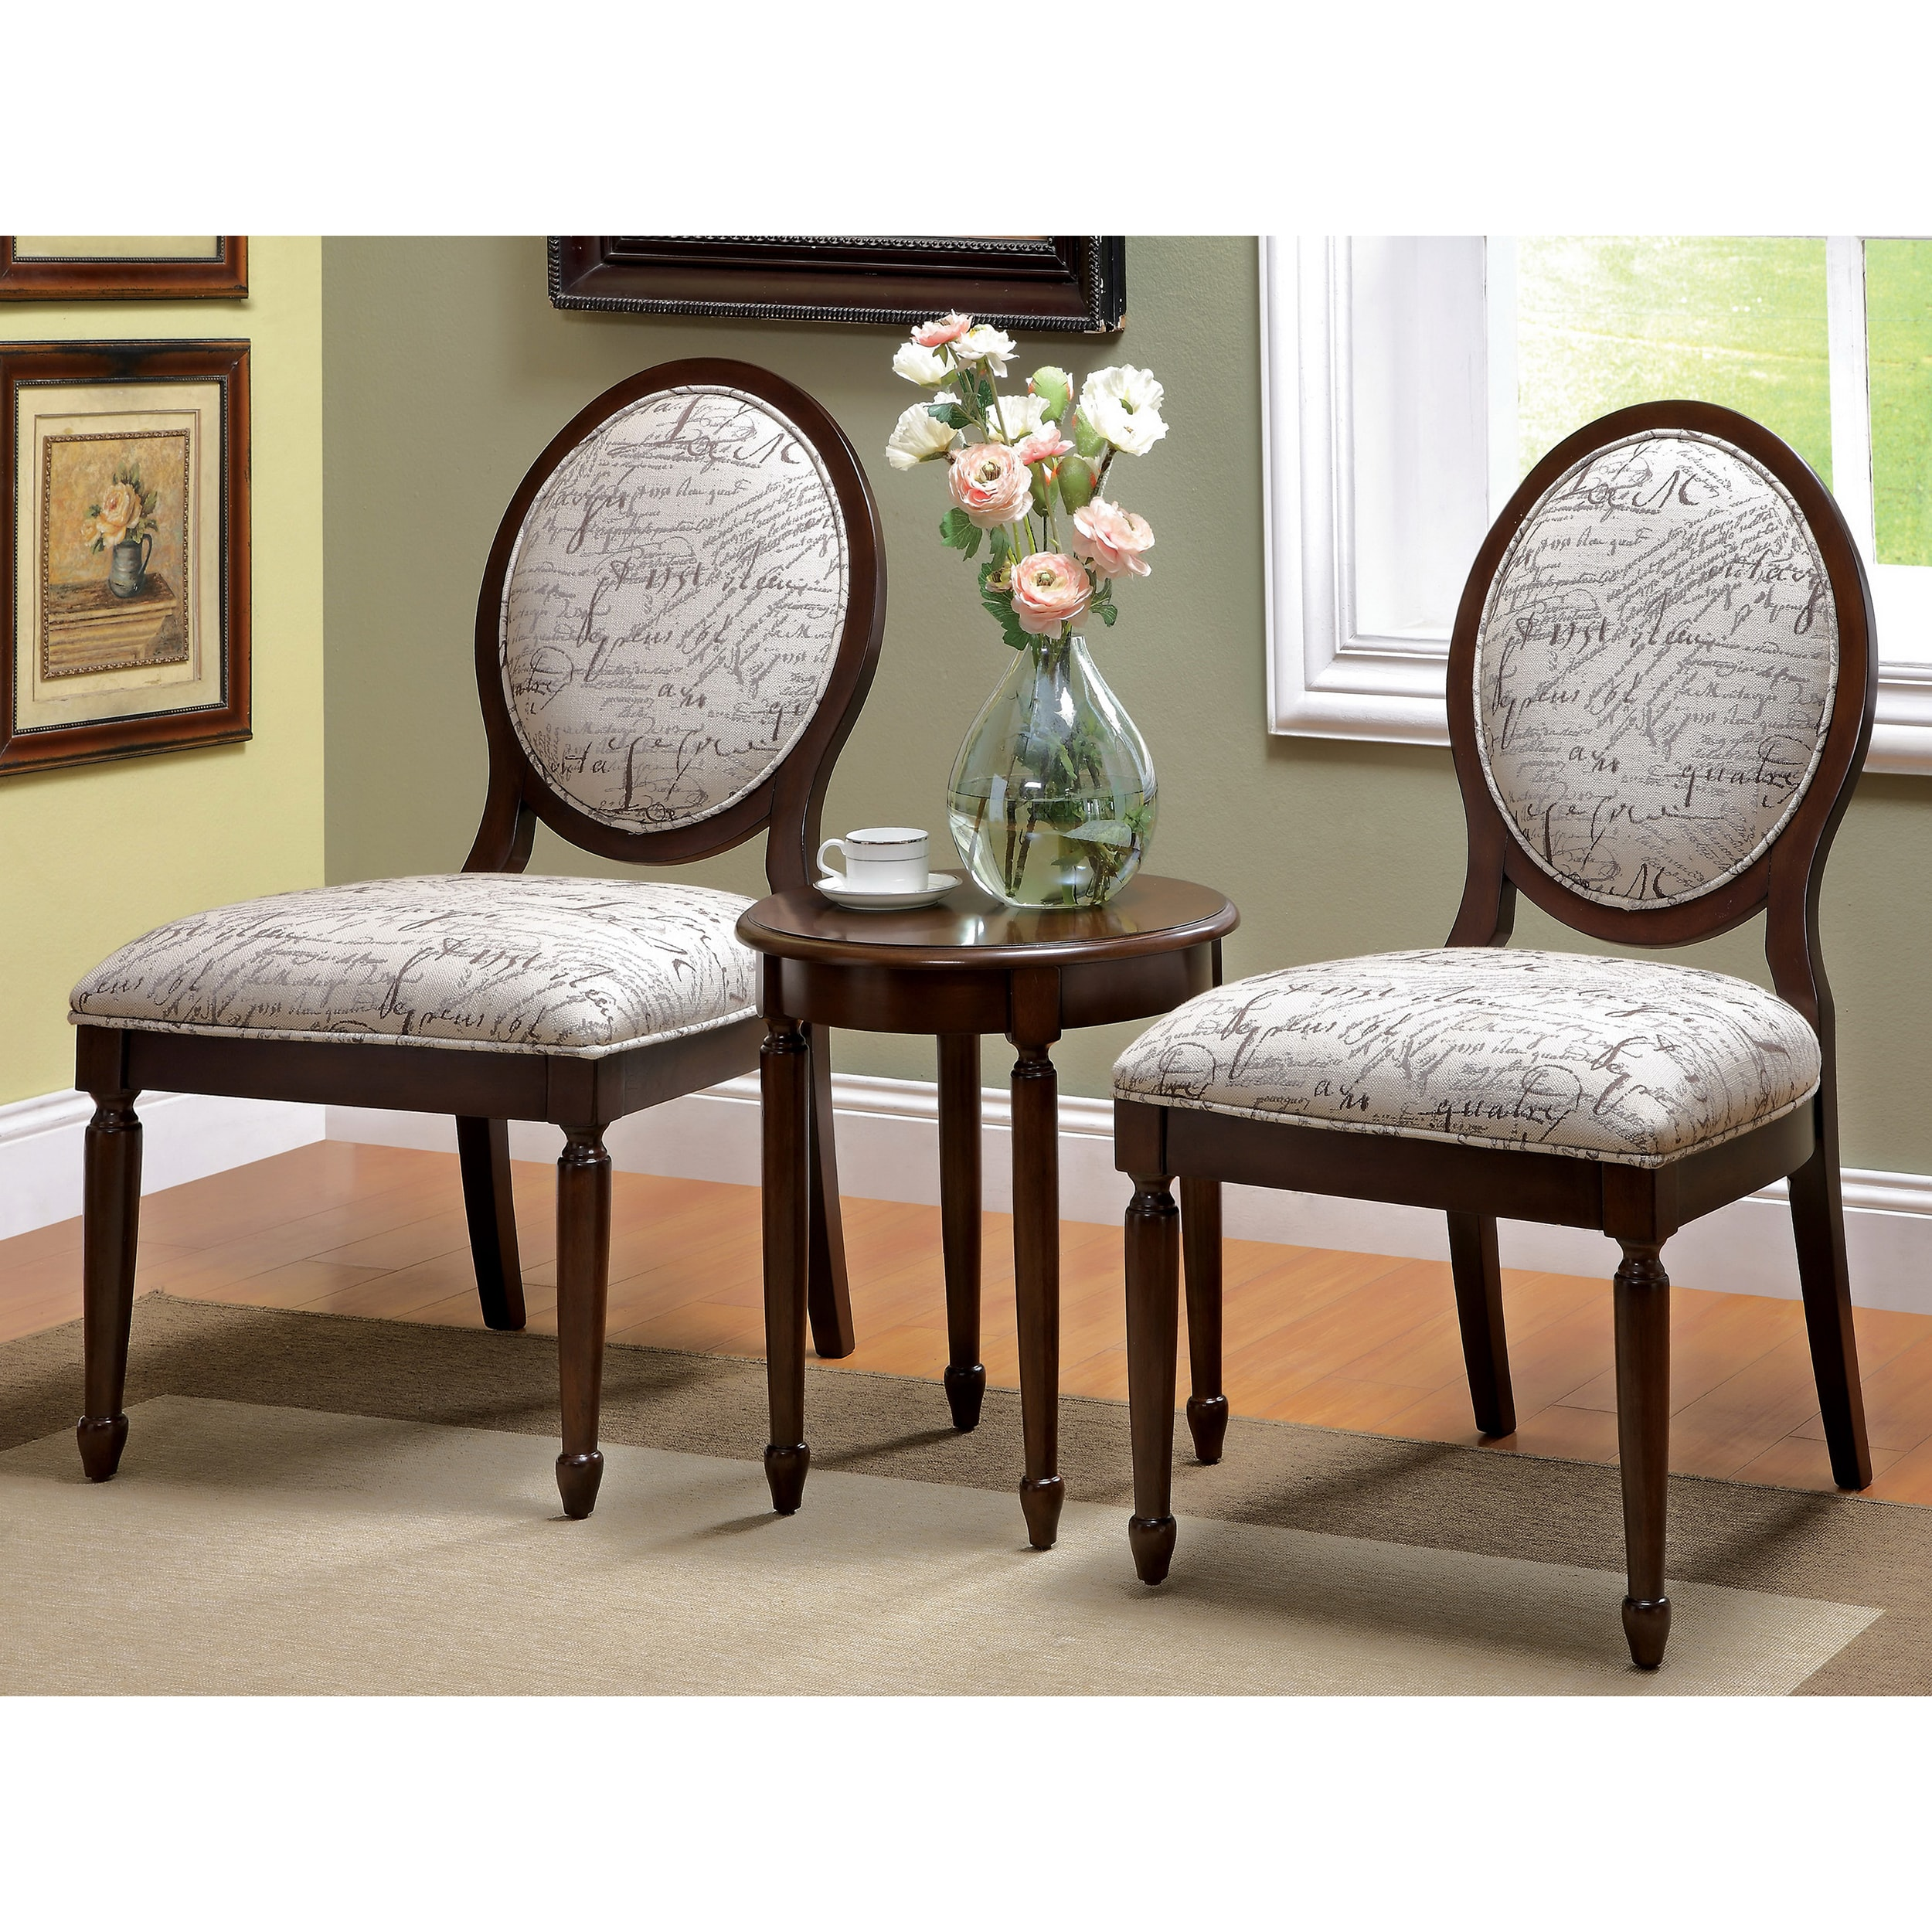 accent chair and table set chantelle piece furniture america milanie dark walnut avenue six view larger chairs furniturendecorcom decorative cordless lamps small tall coffee